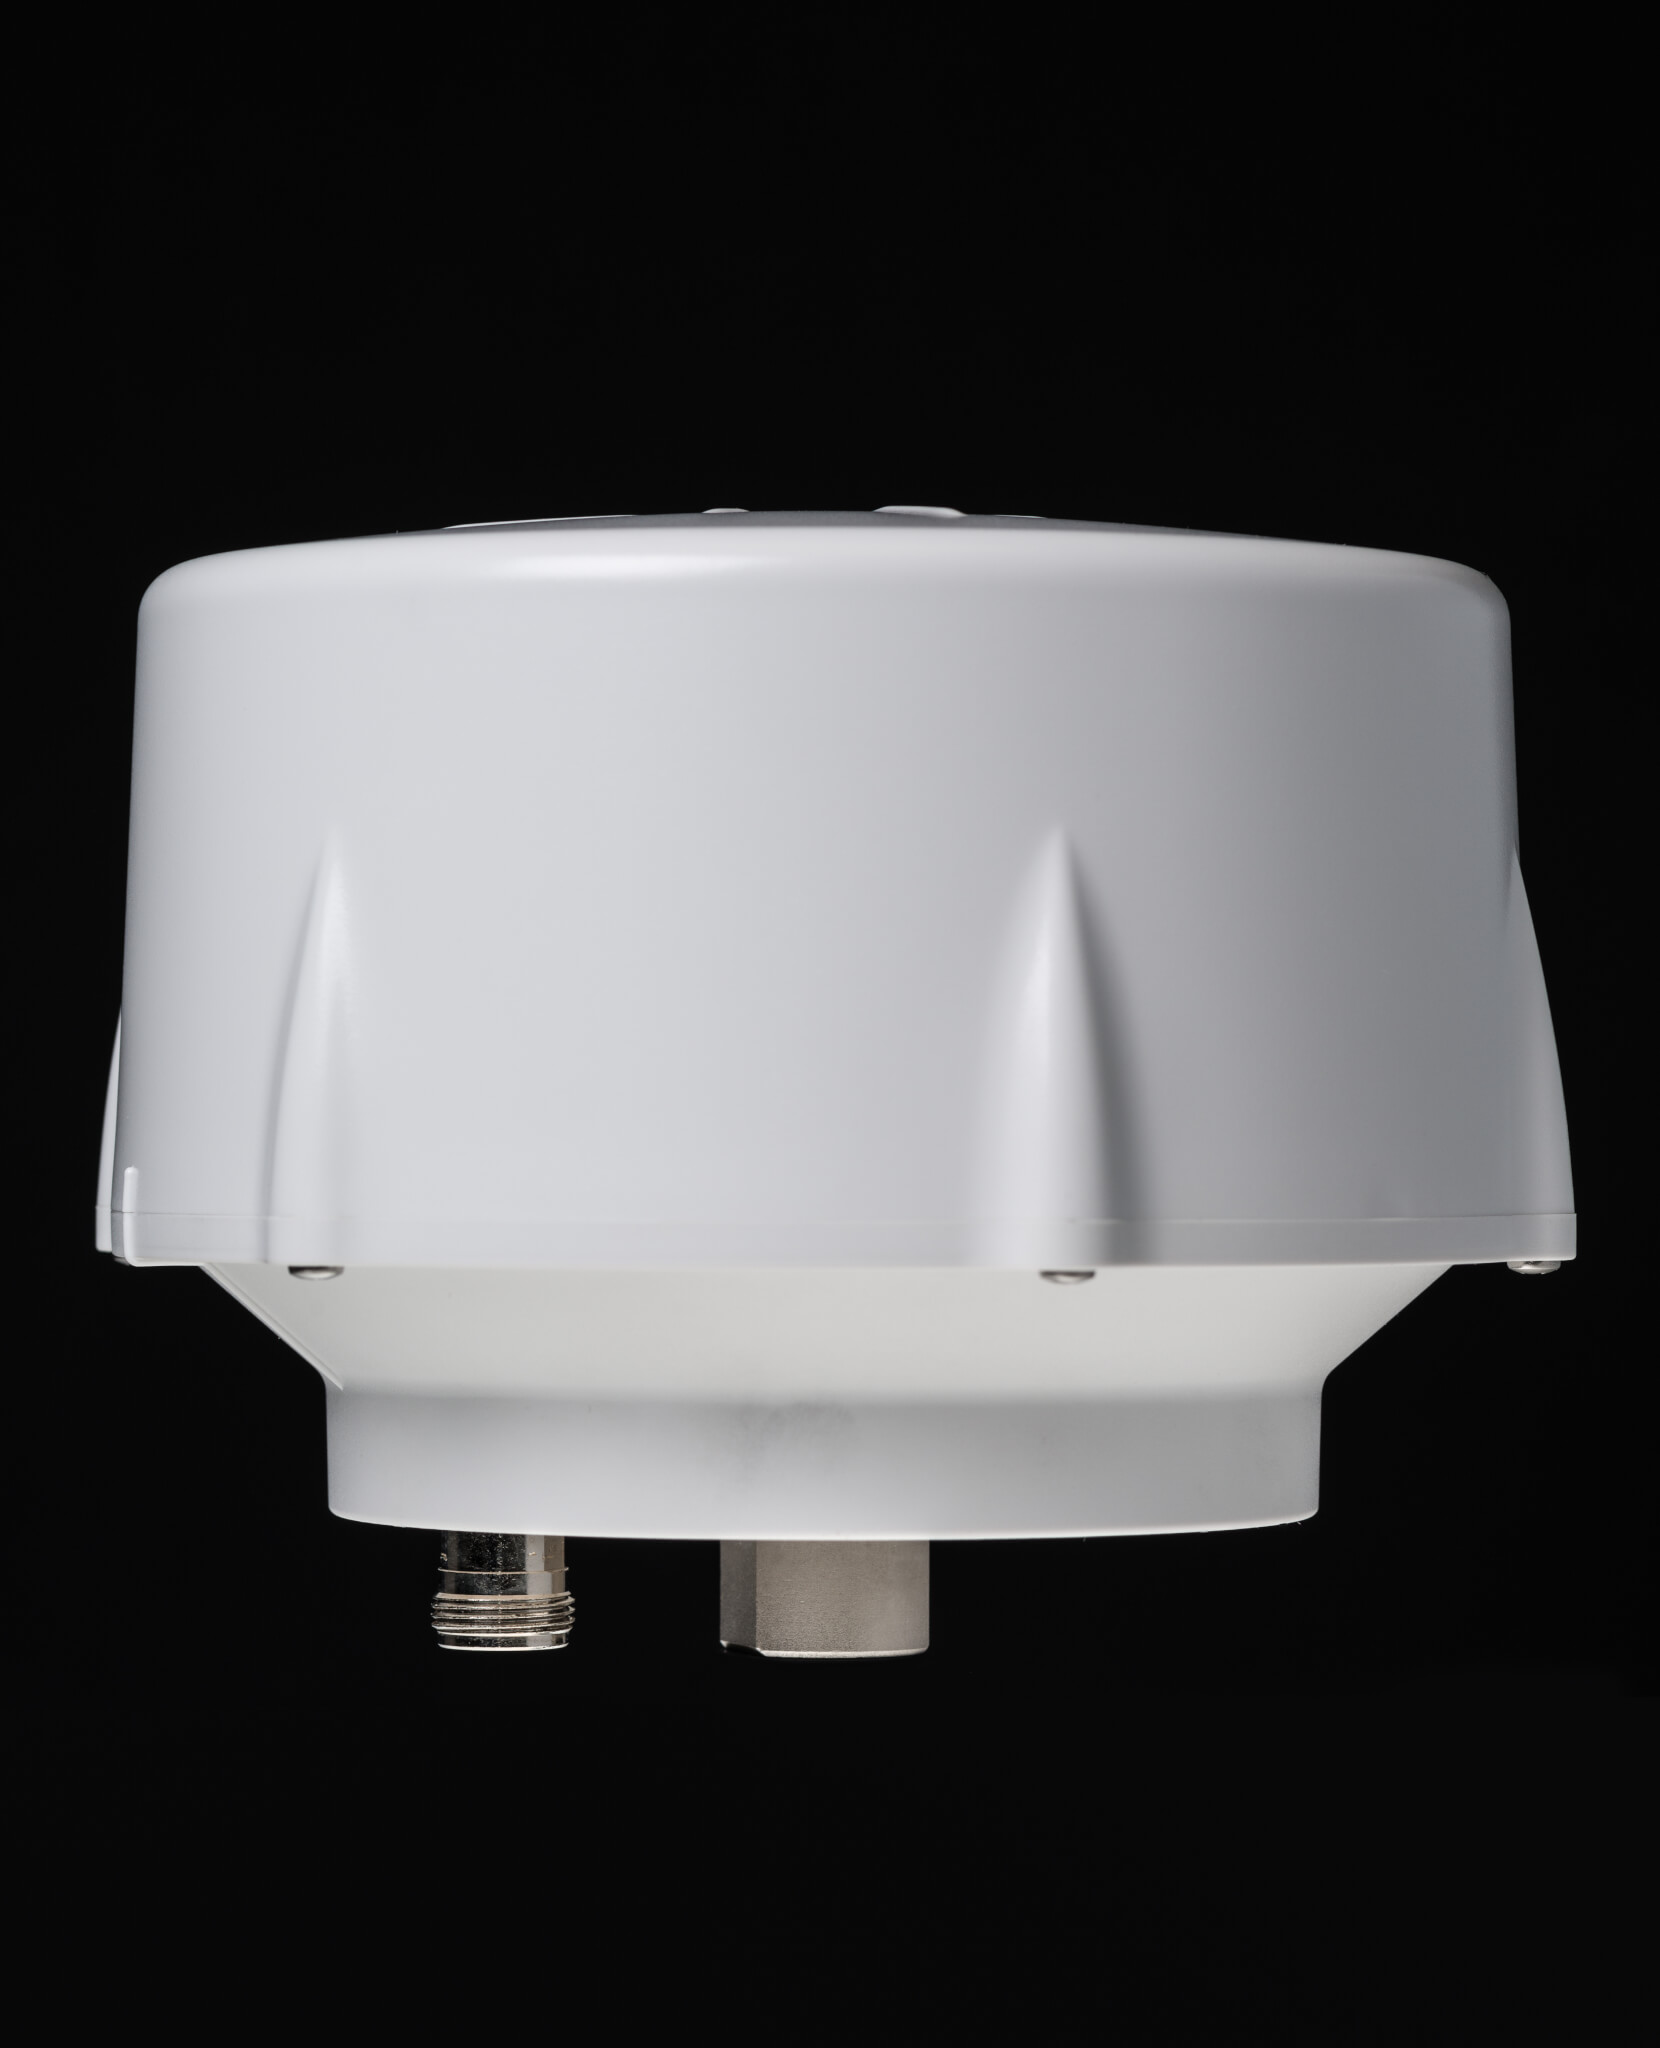 VP6300 Antenna employed in RTK reference stations to enhance positional accuracy of rolling assets